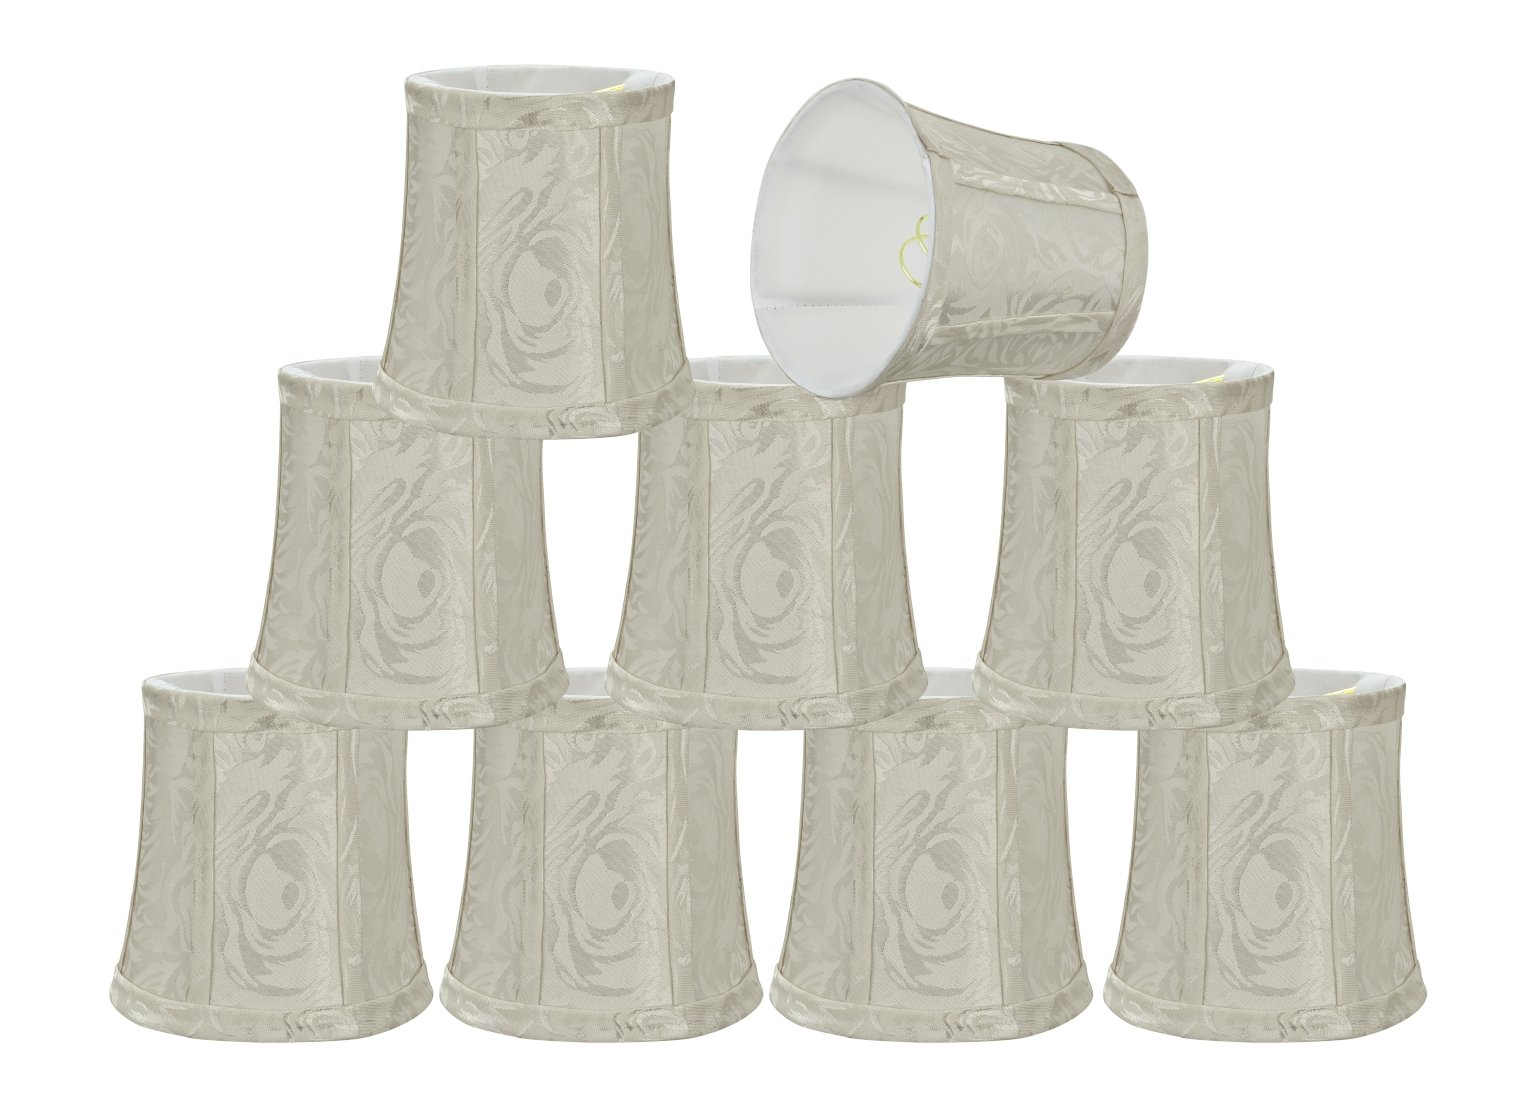 Aspen Creative 30363-2 Small Bell Shape Chandelier Clip-On Lampshade Set (2 Pack), Transitional Design in Off White,... by Aspen Creative Corporation